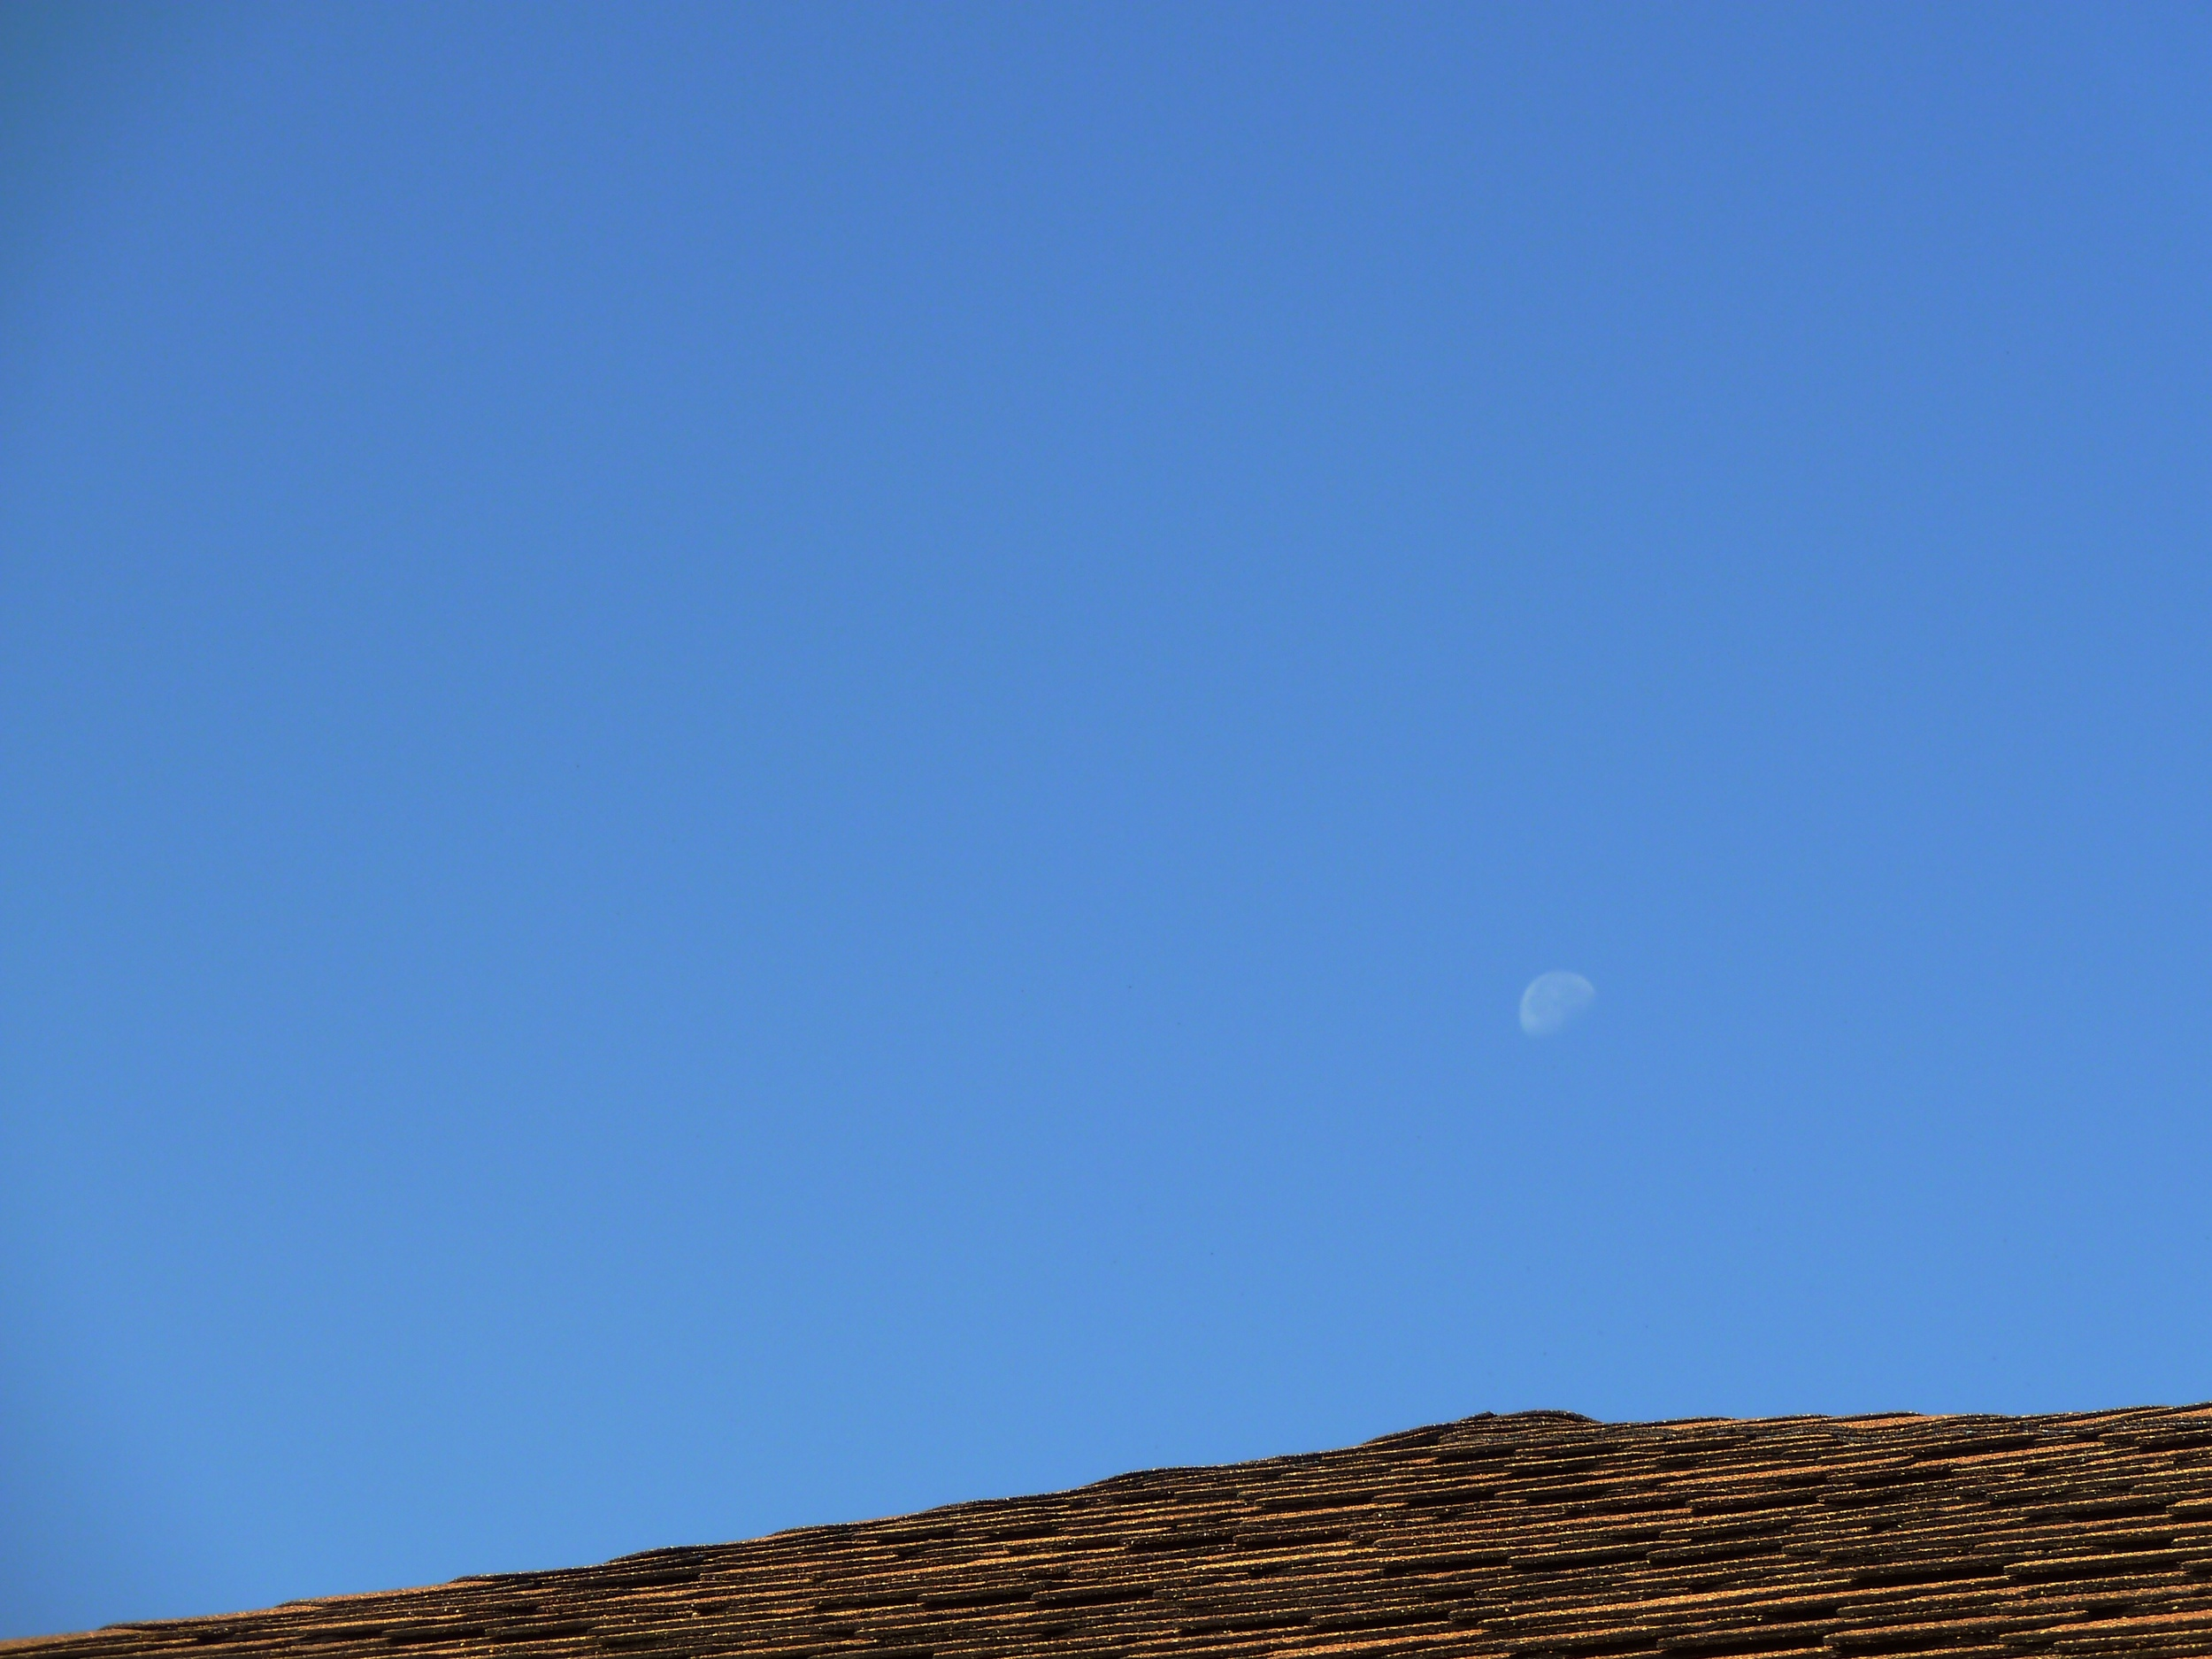 Rooftop under a waning moon.